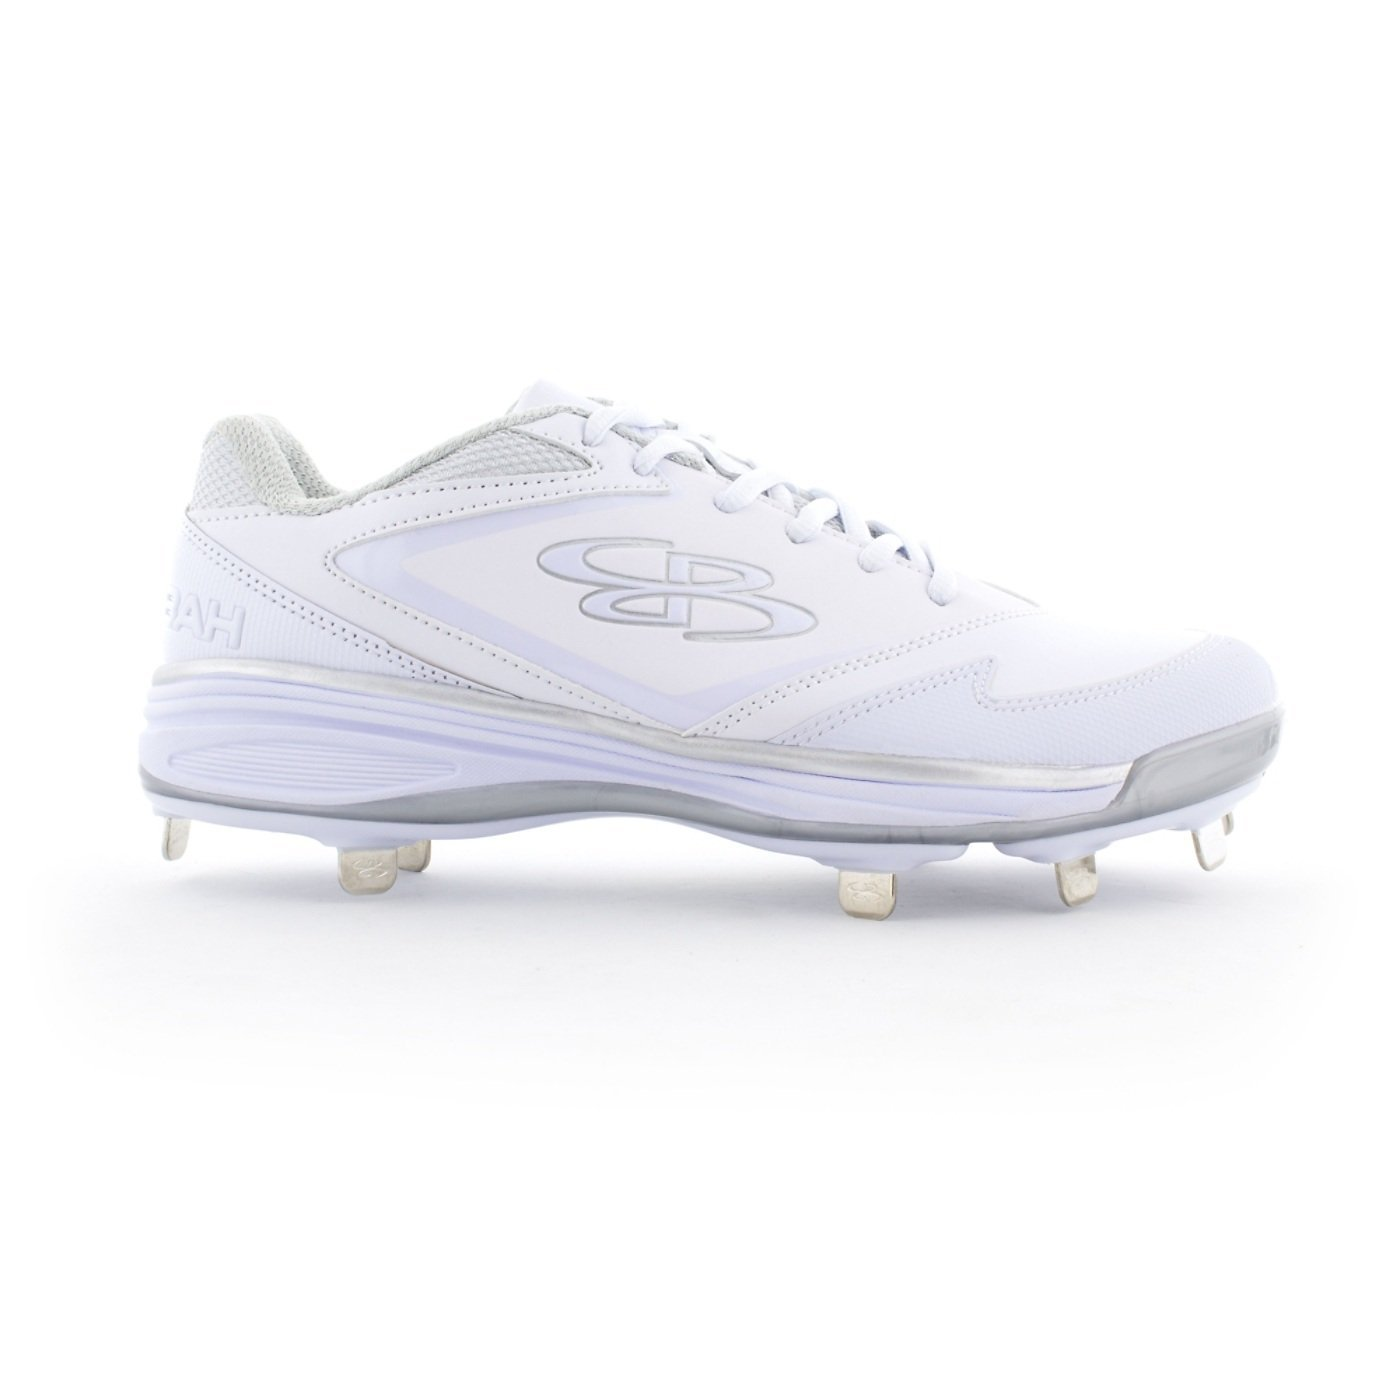 8ece1b5cc54 Get Quotations · Boombah Women s A-Game Metal Cleats - 6 Color Options -  Multiple Sizes